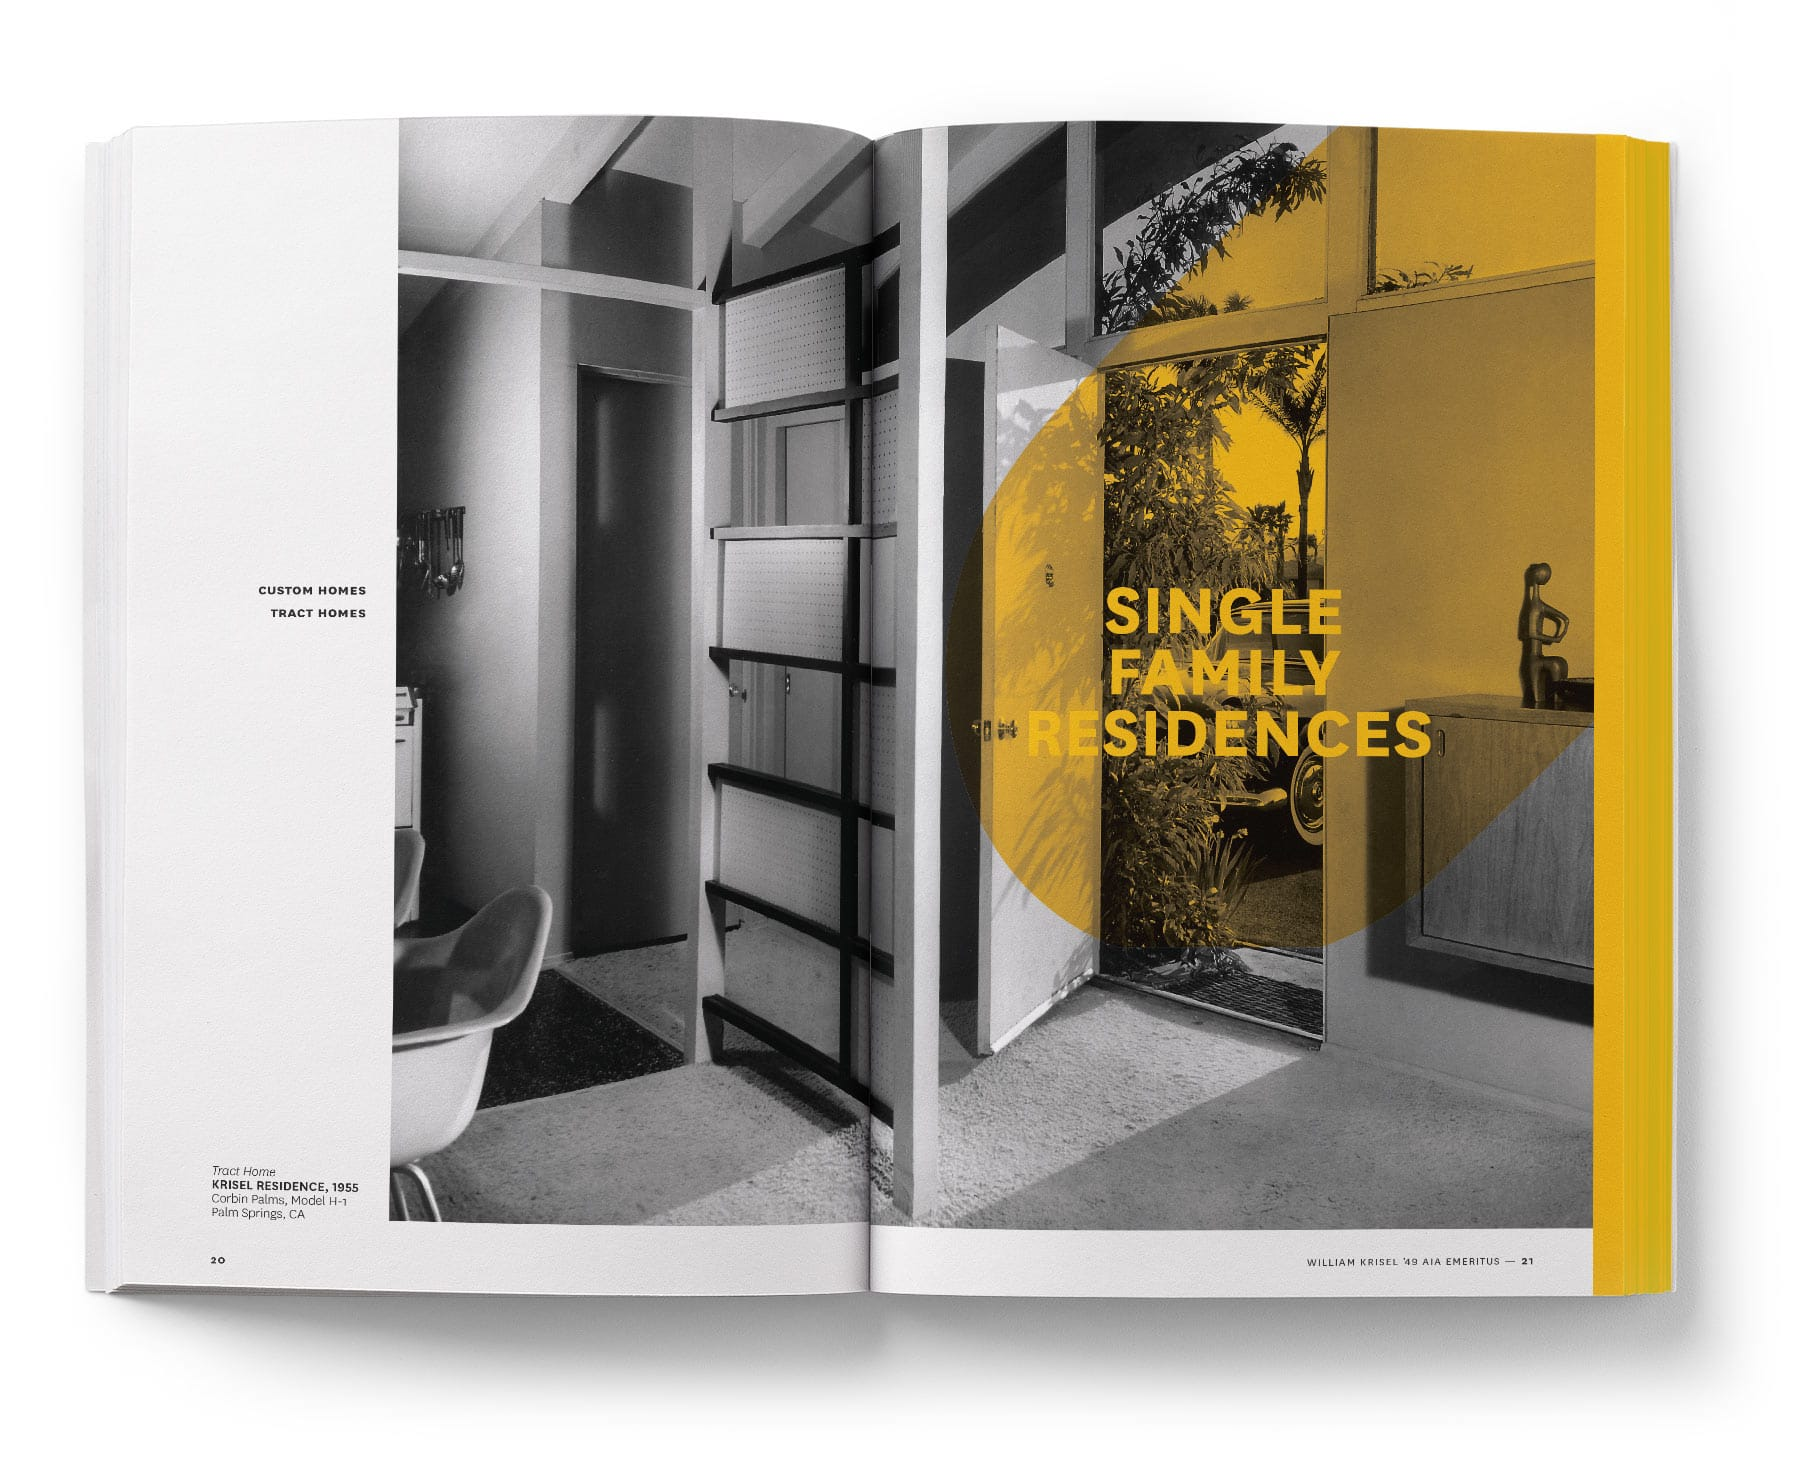 book spread showing the entry hall of a midcentury home